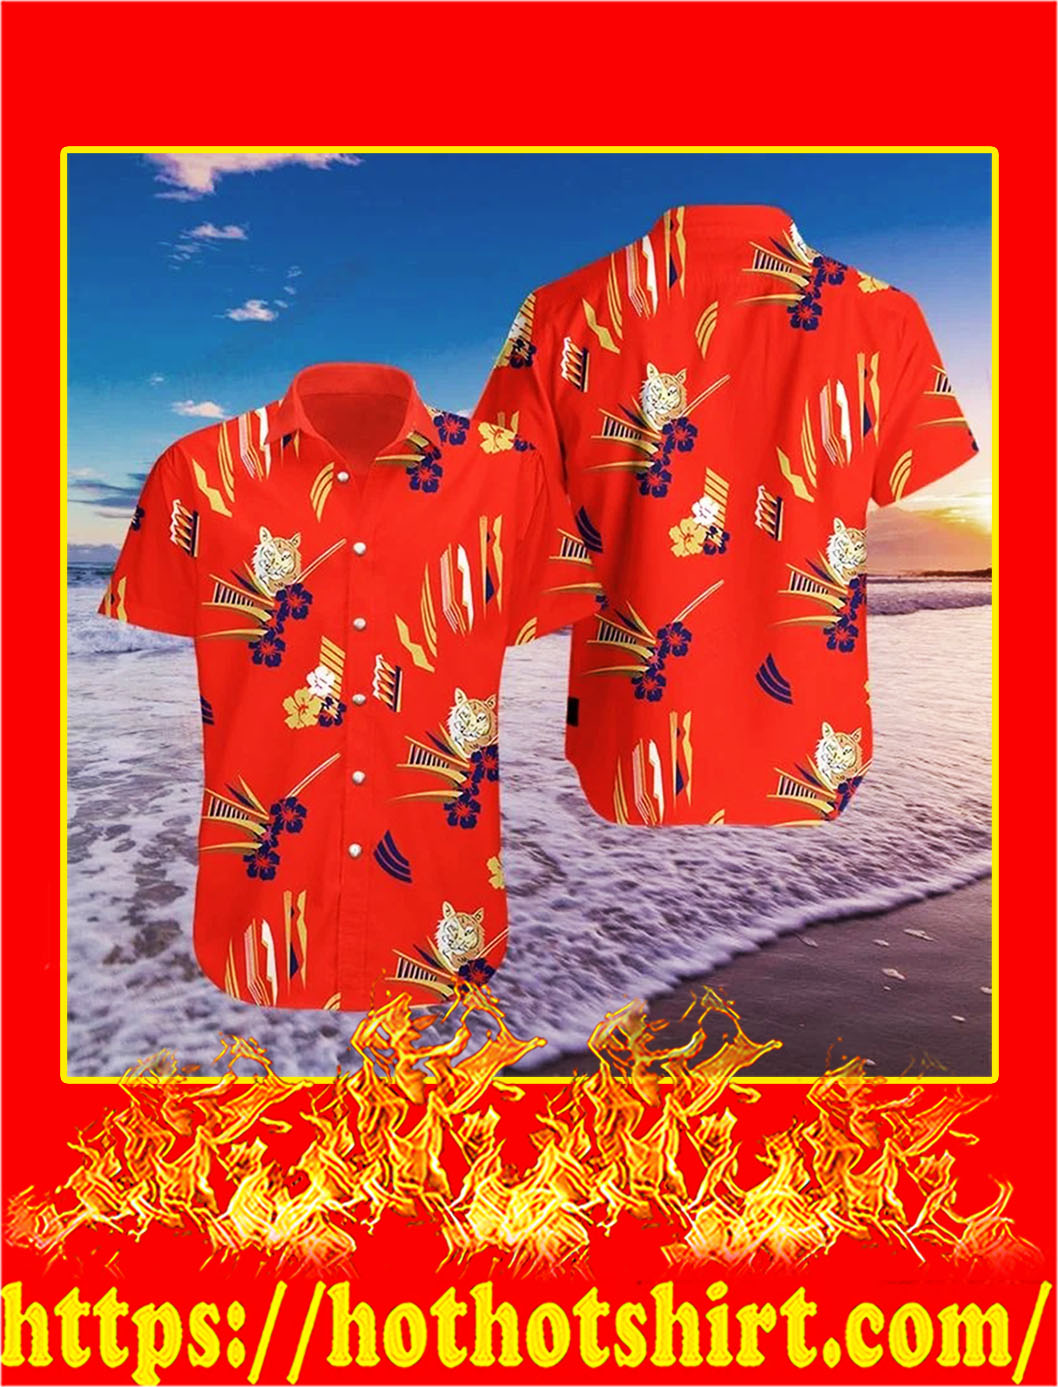 Tony montana al pacino in scarface hawaiian shirt - L